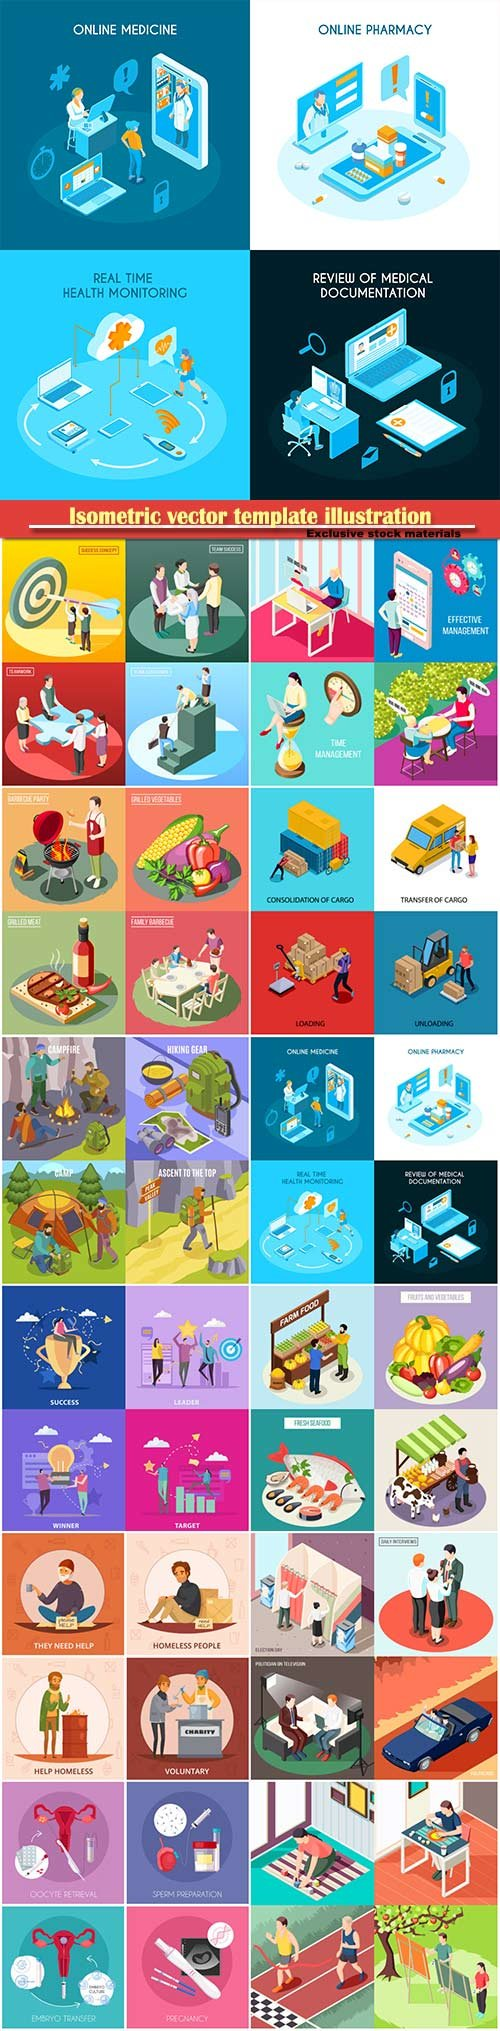 Isometric vector template illustration # 10